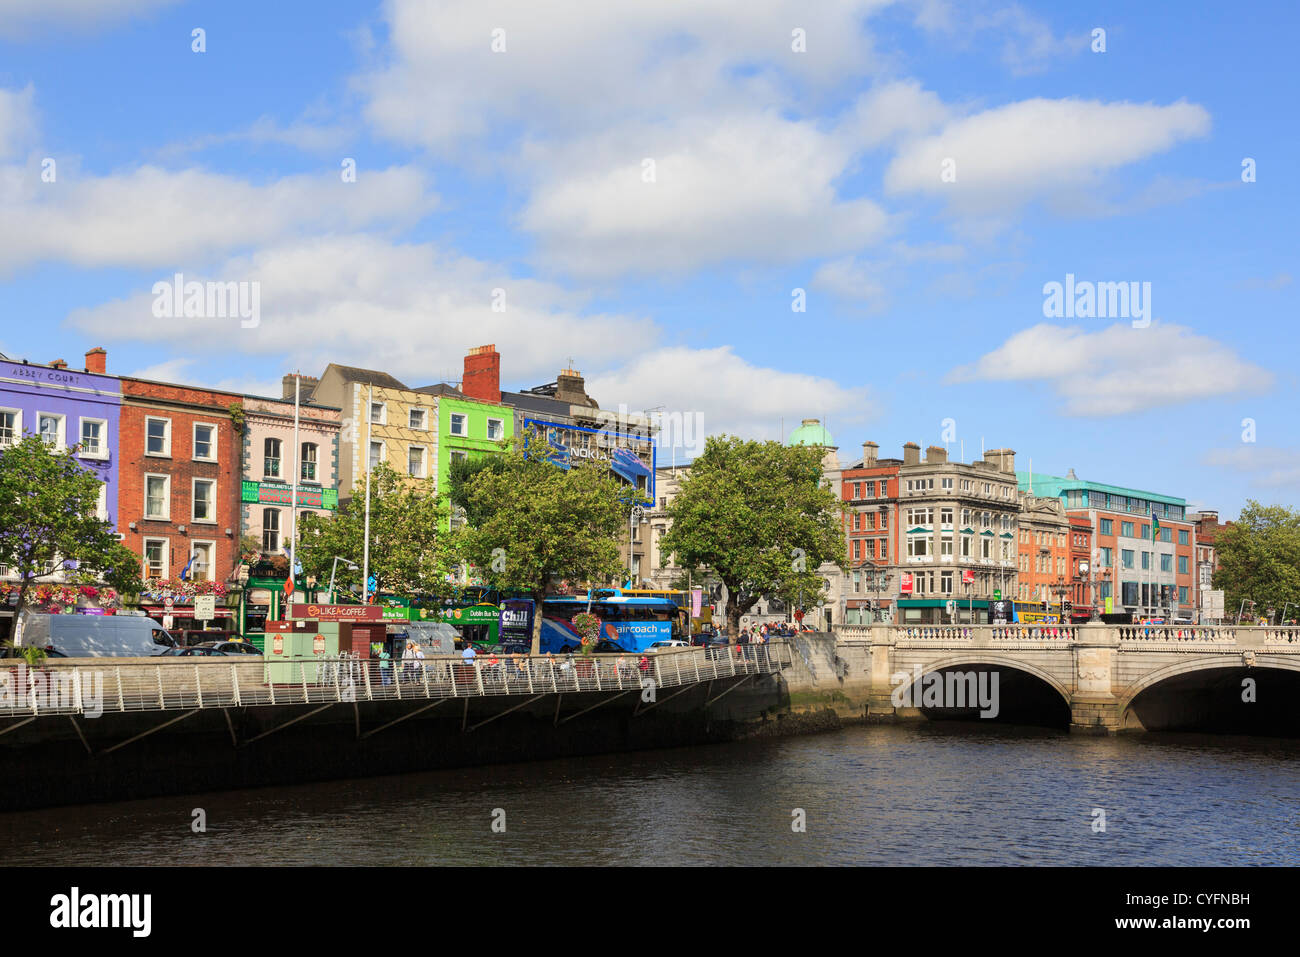 View across River Liffey to colourful riverside buildings on Batchelor's Walk by O'Connell Bridge in Dublin - Stock Image